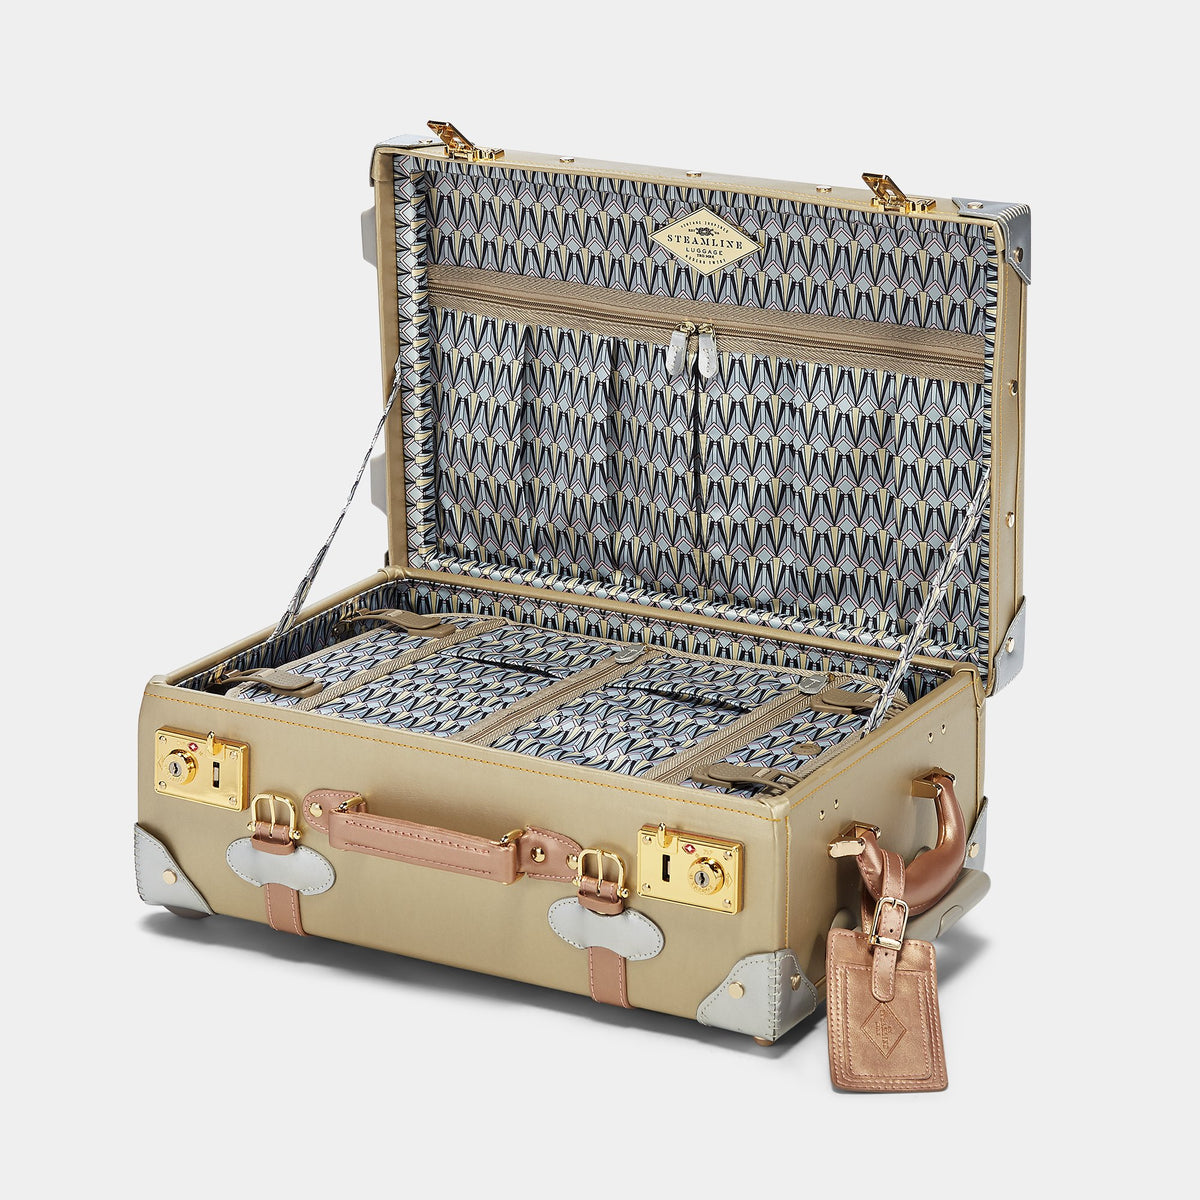 The Alchemist Carryon - Retro-Style Cabin Luggage - Interior Front